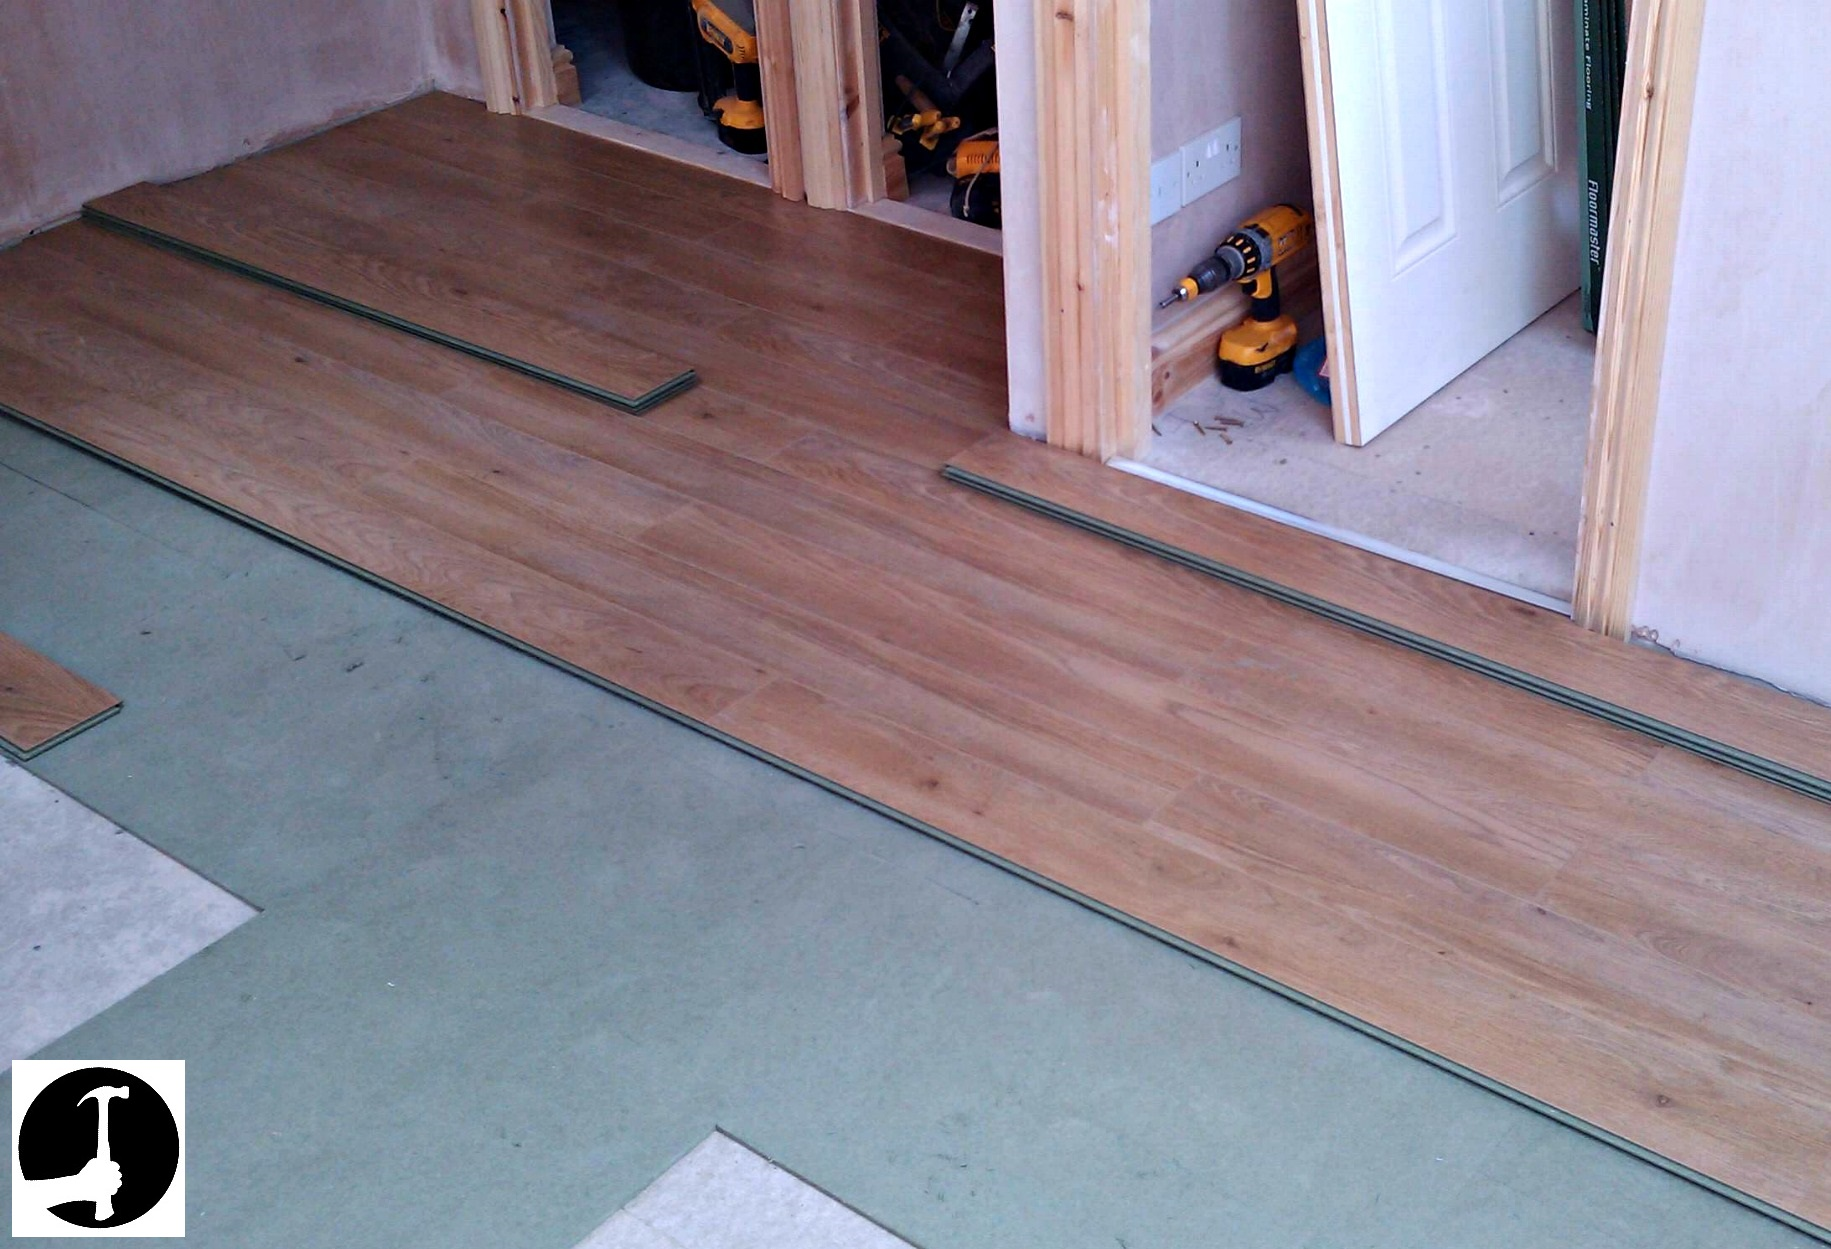 How To Install Laminate Flooring - What do i put under laminate flooring